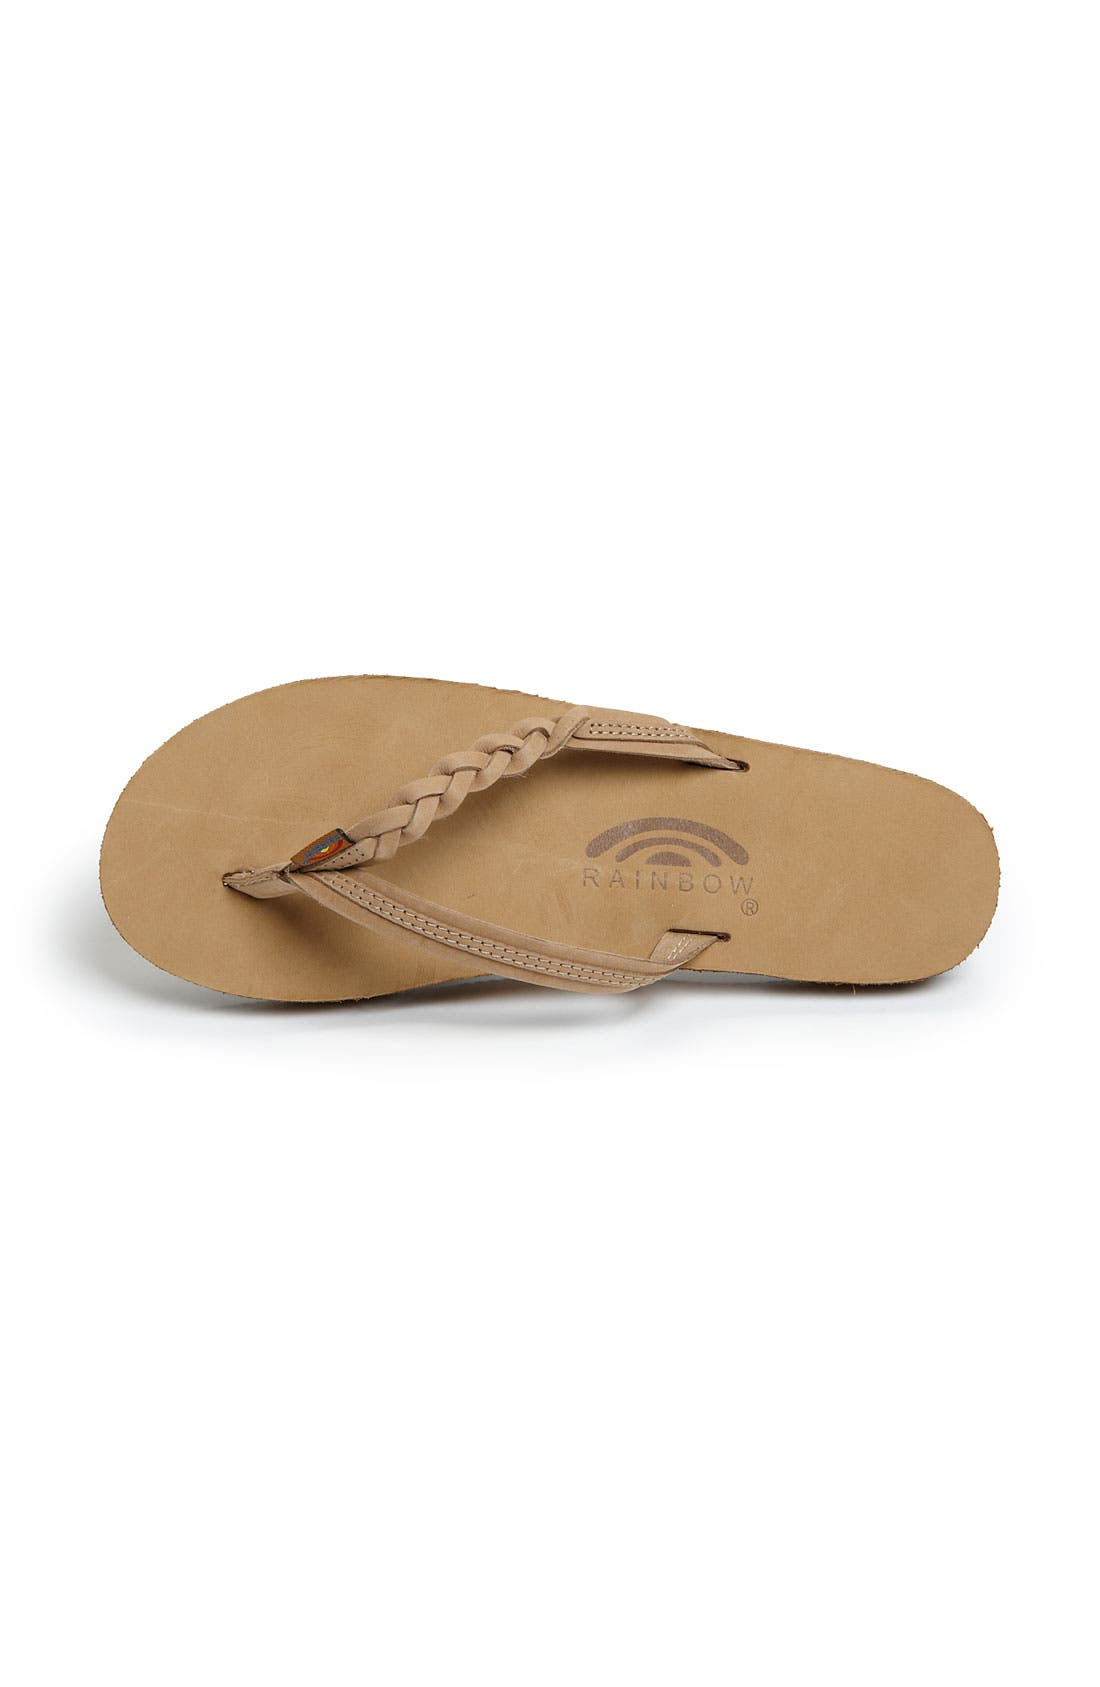 Rainbow 'Flirty' Braided Leather Flip Flop,                             Alternate thumbnail 3, color,                             SIERRA BROWN